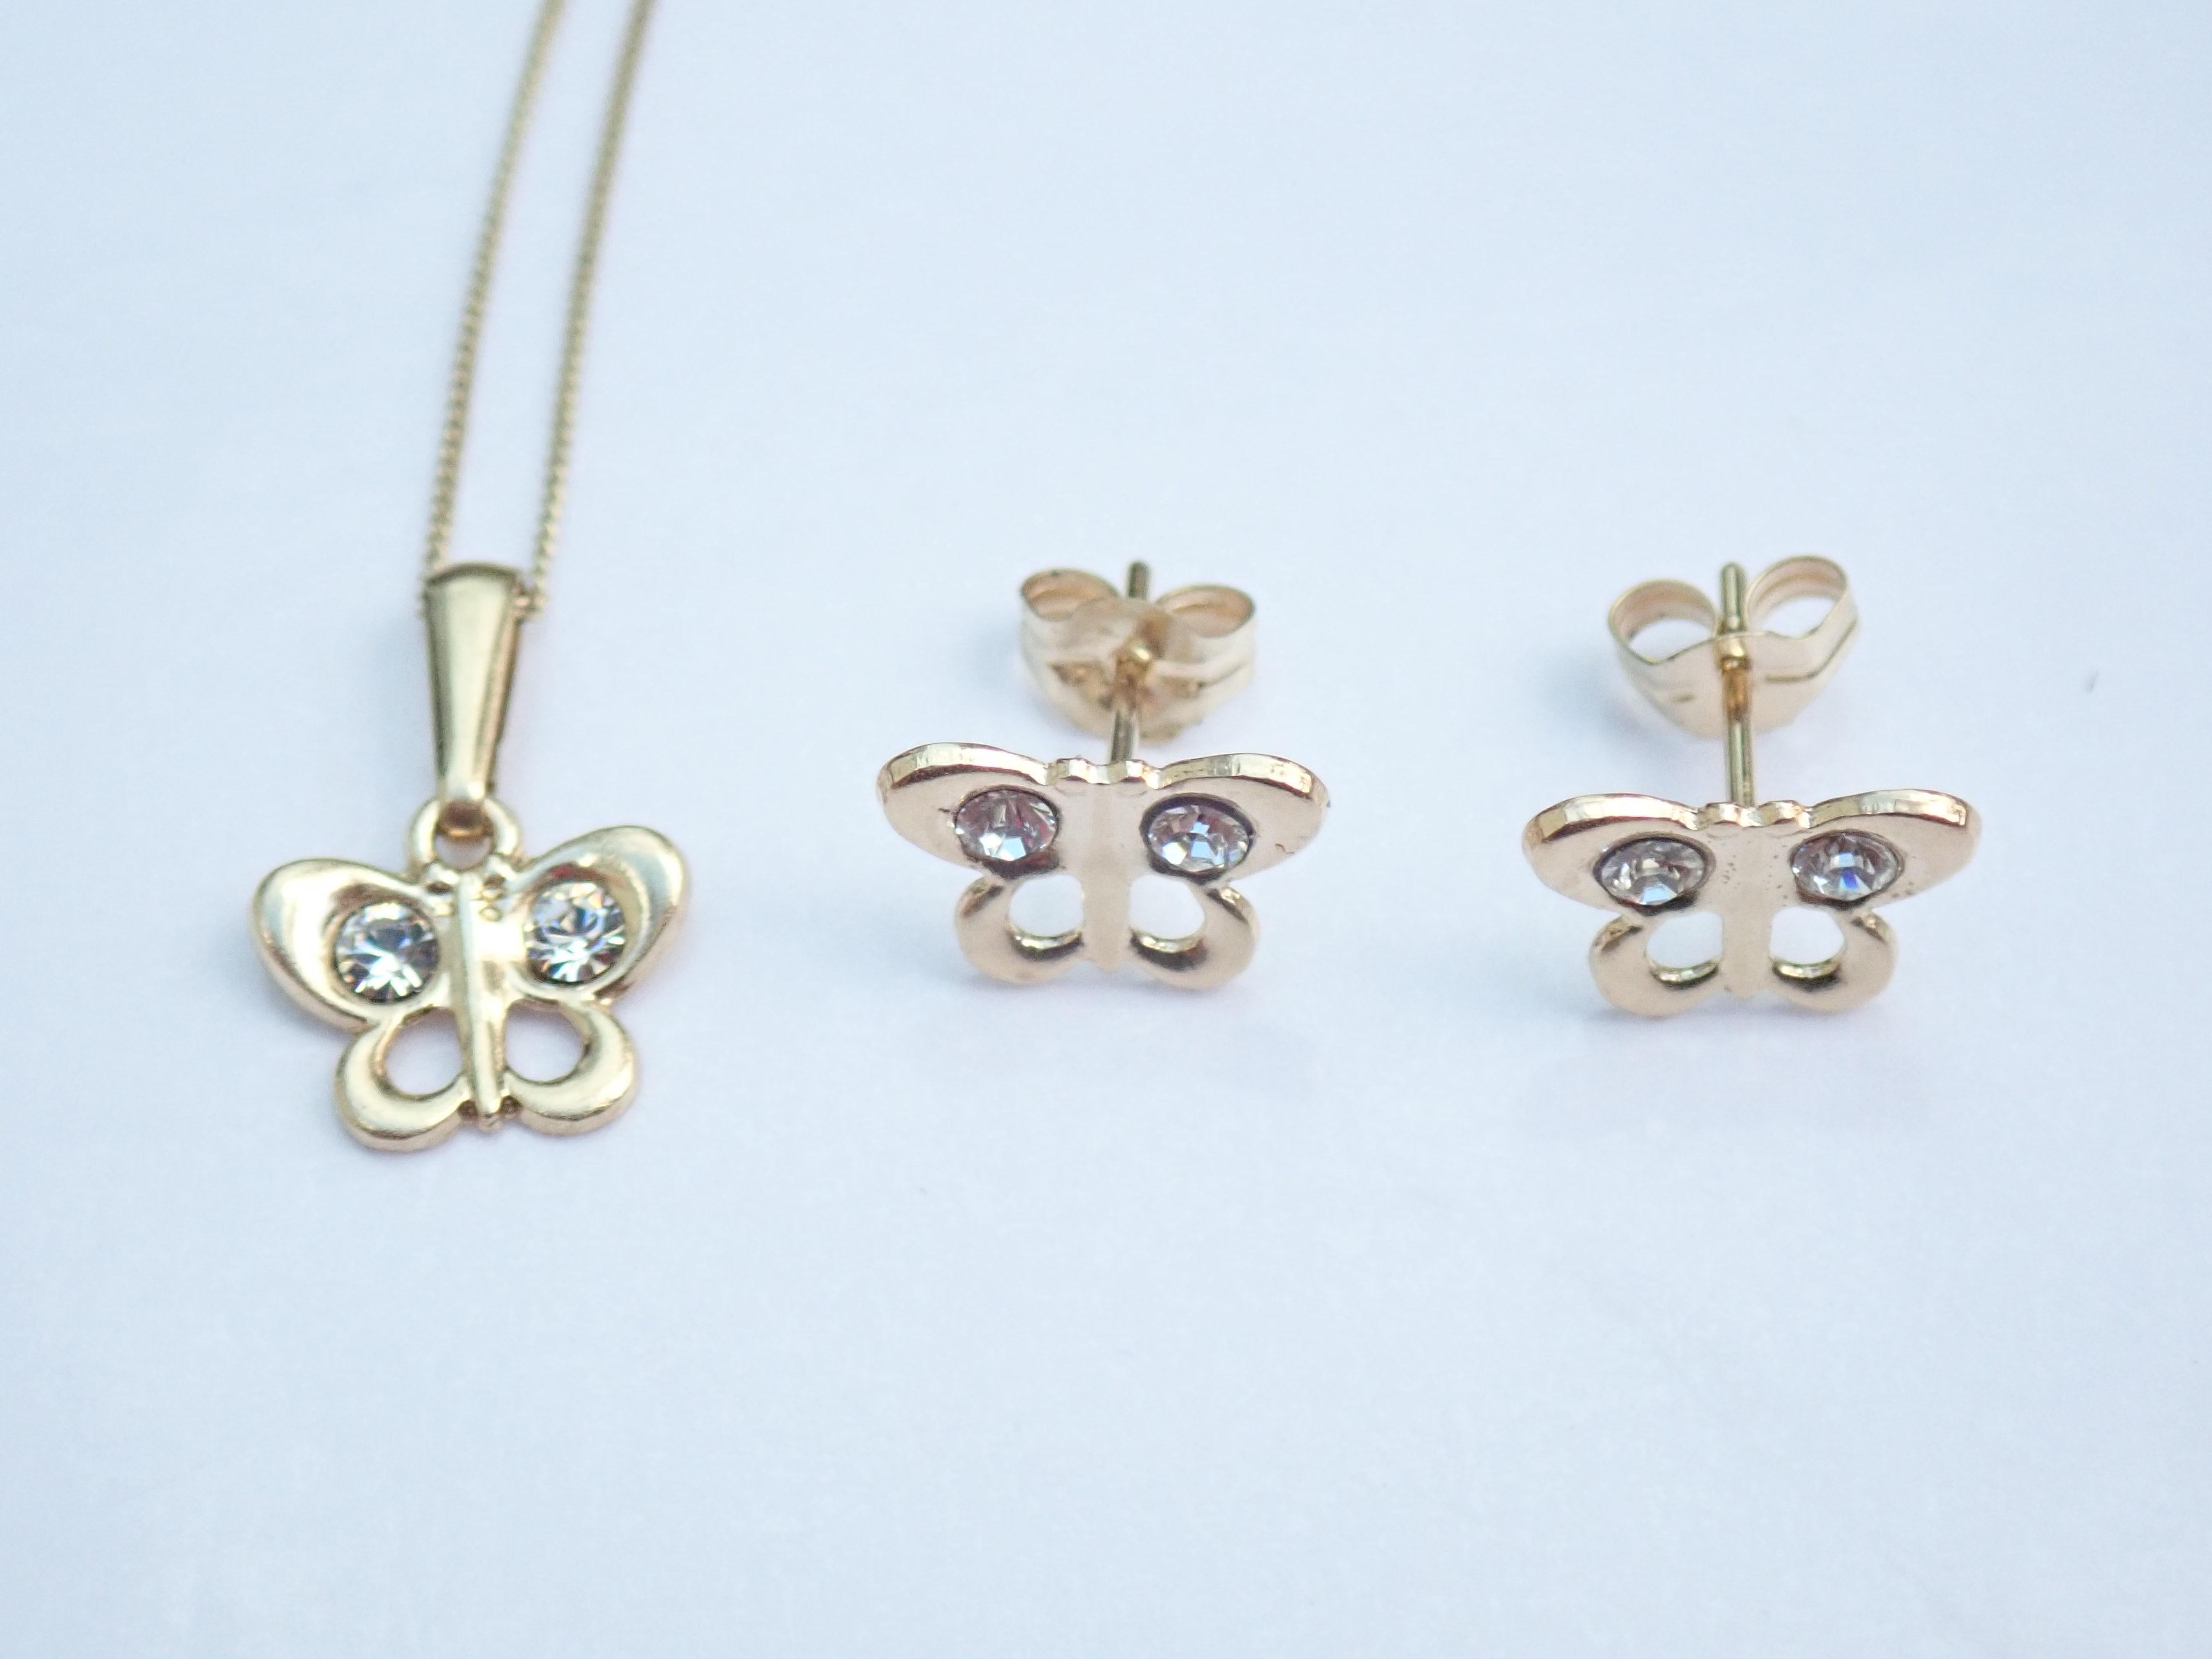 9k Solid Gold Butterfly Pendant and Earring Set 16″ Gold Chain 1.0gms #16